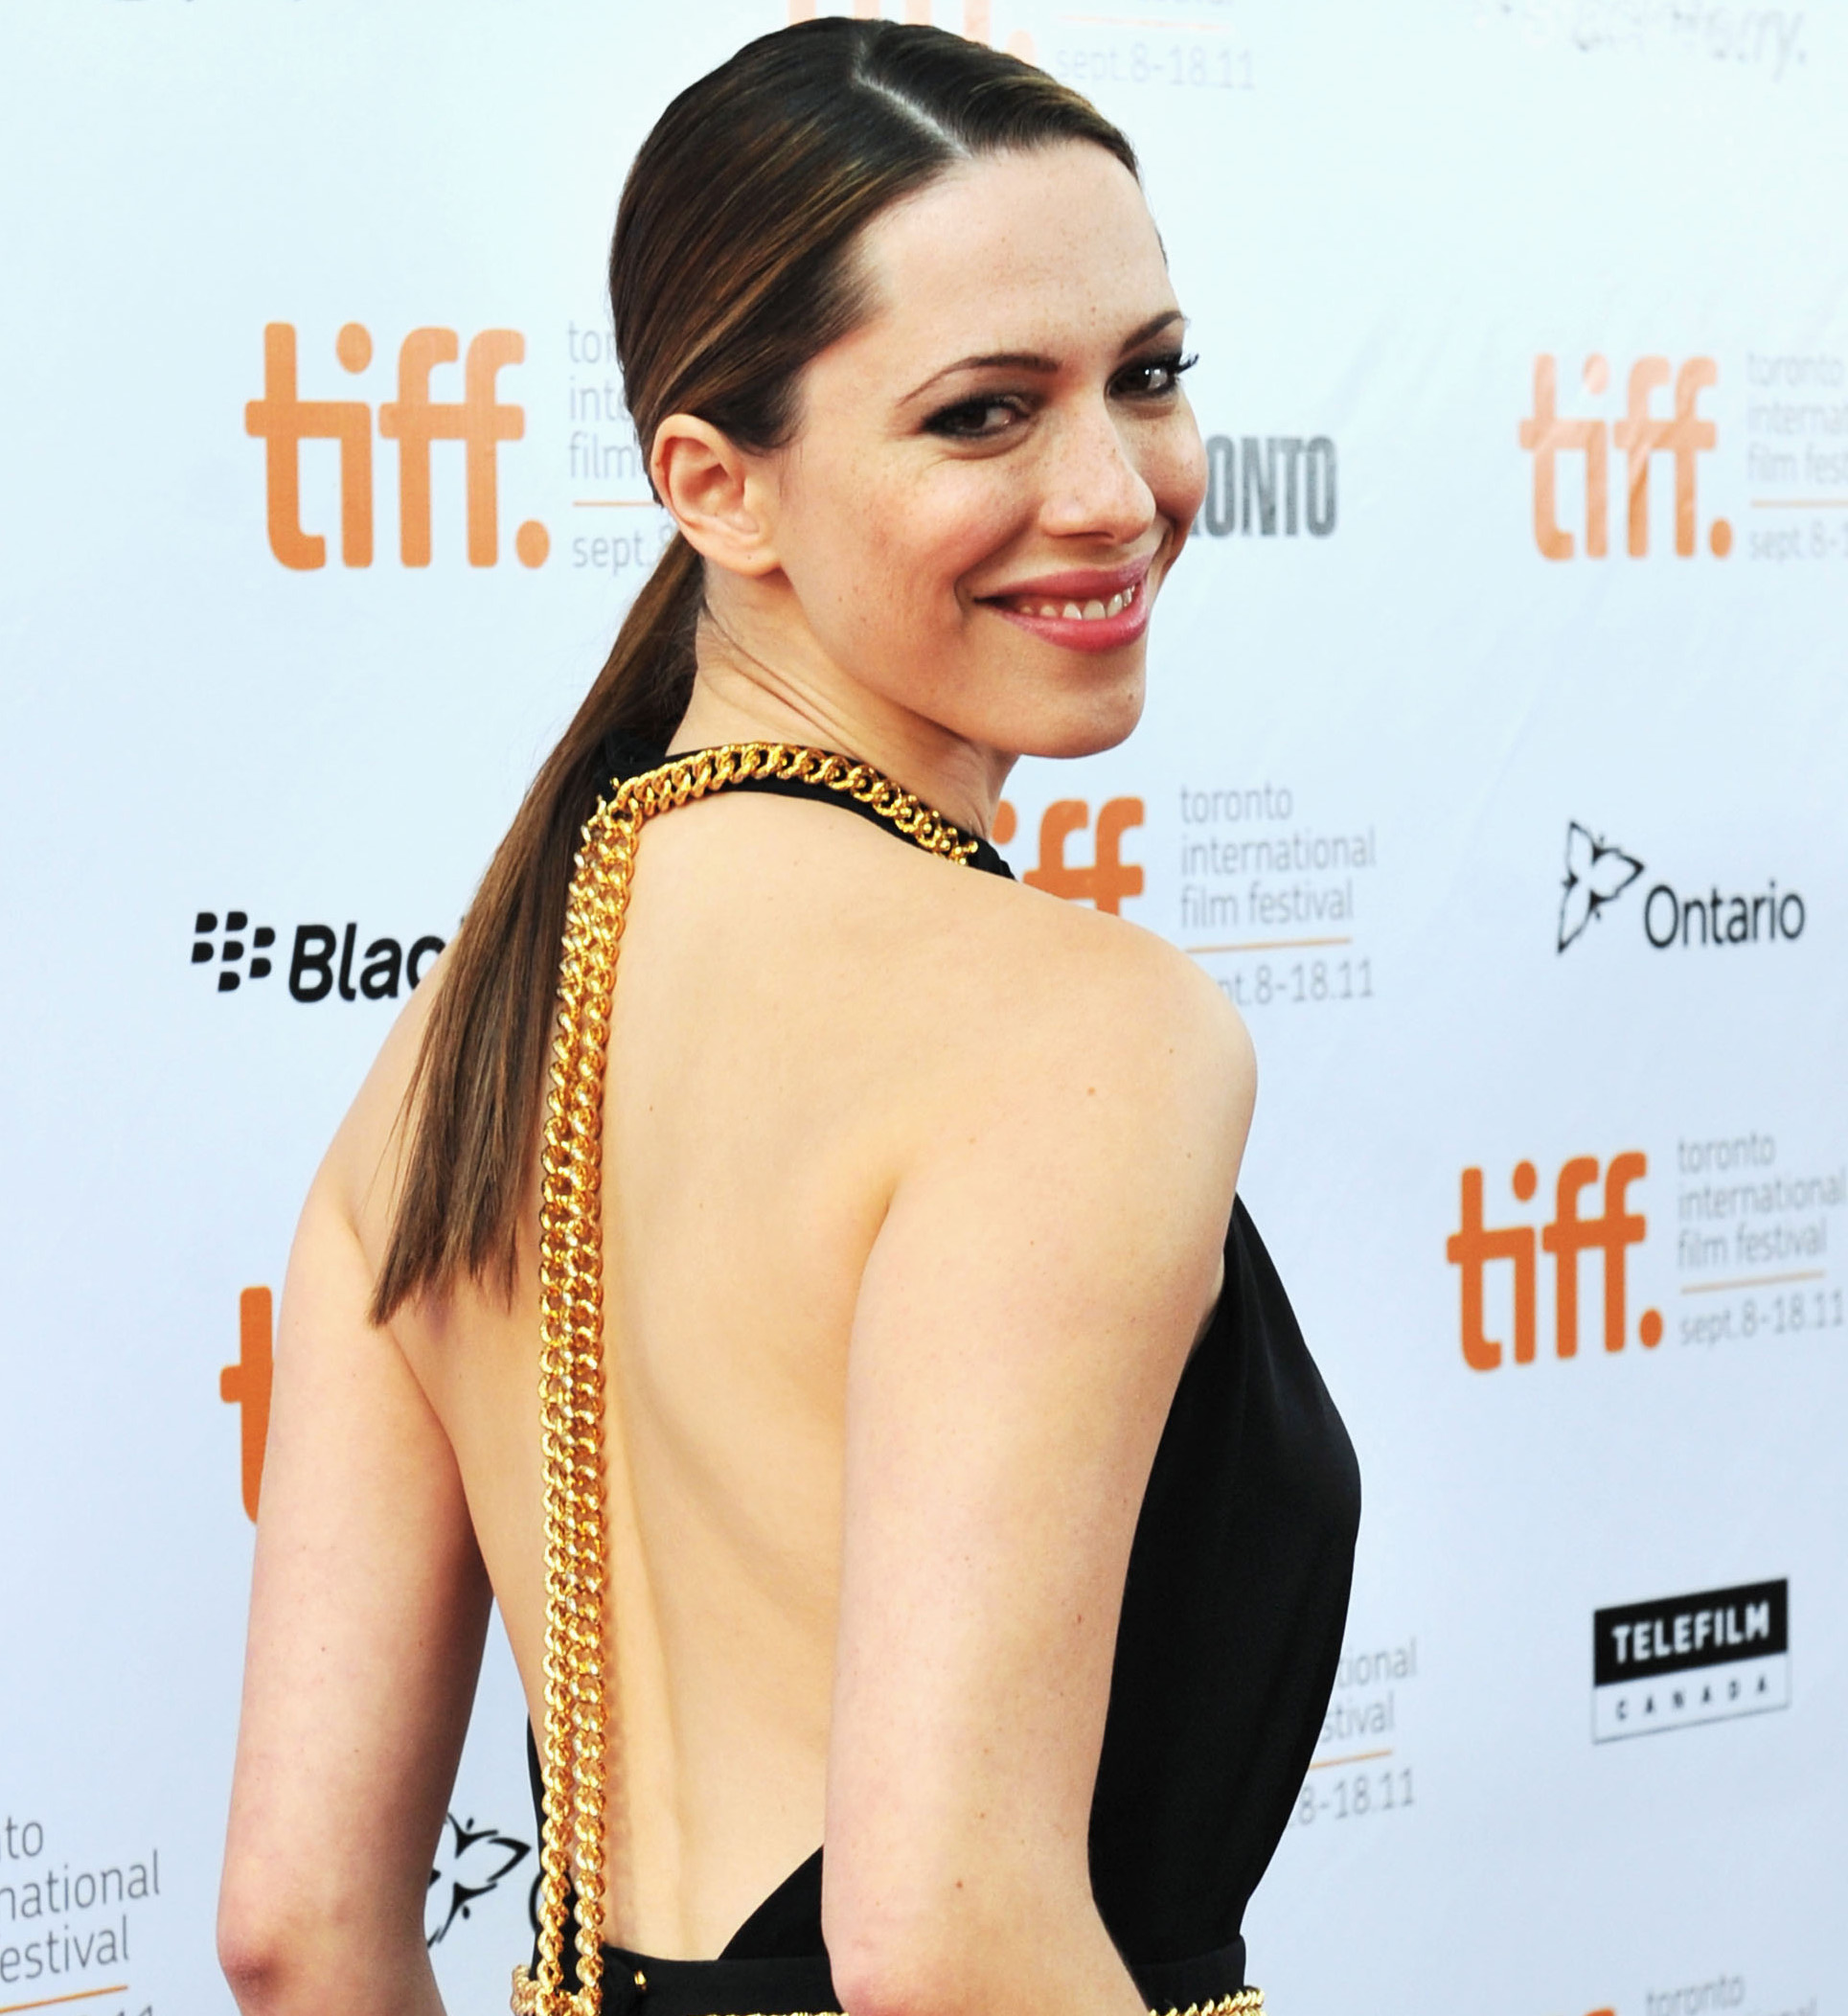 Rebecca Hall, Rebecca Hall photos, hot celebrity women